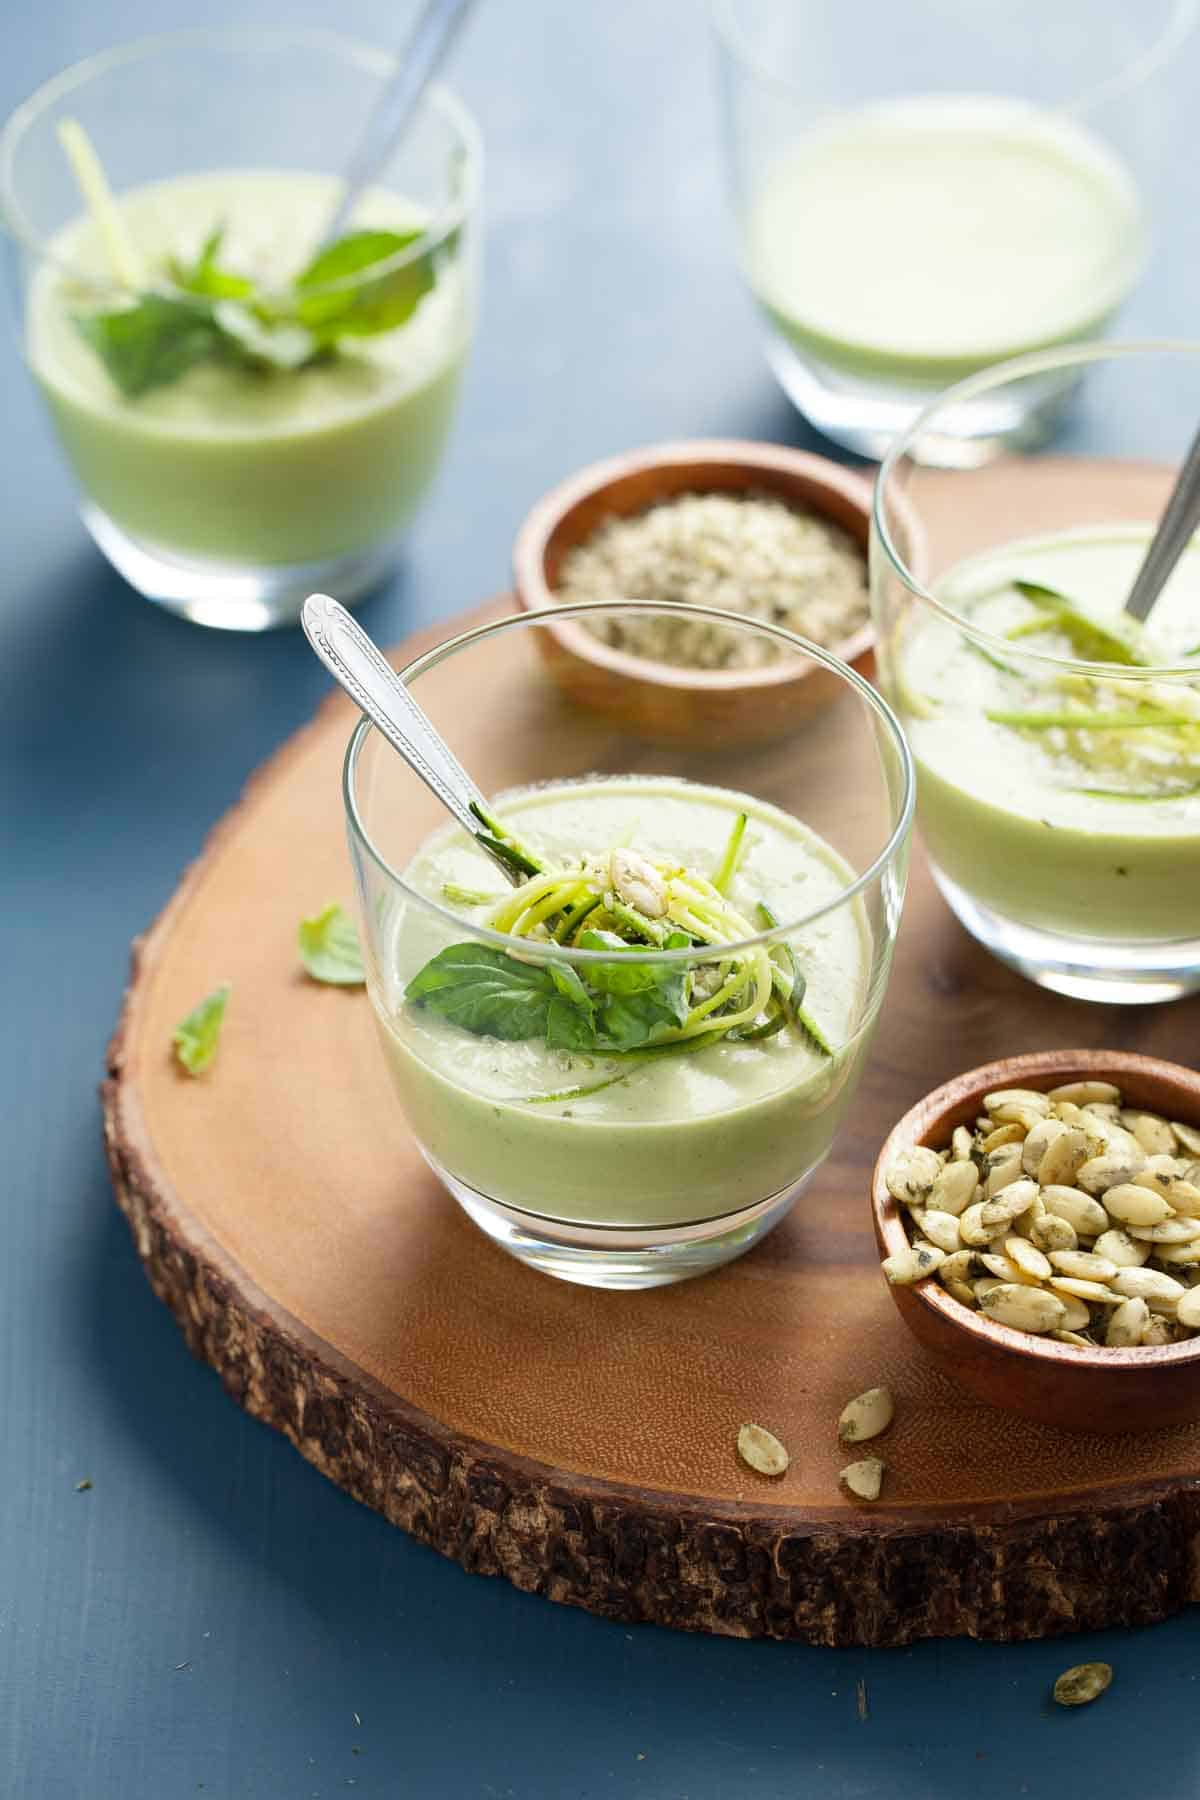 Chilled vegan zucchini basil soup in a small glass on a wooden board